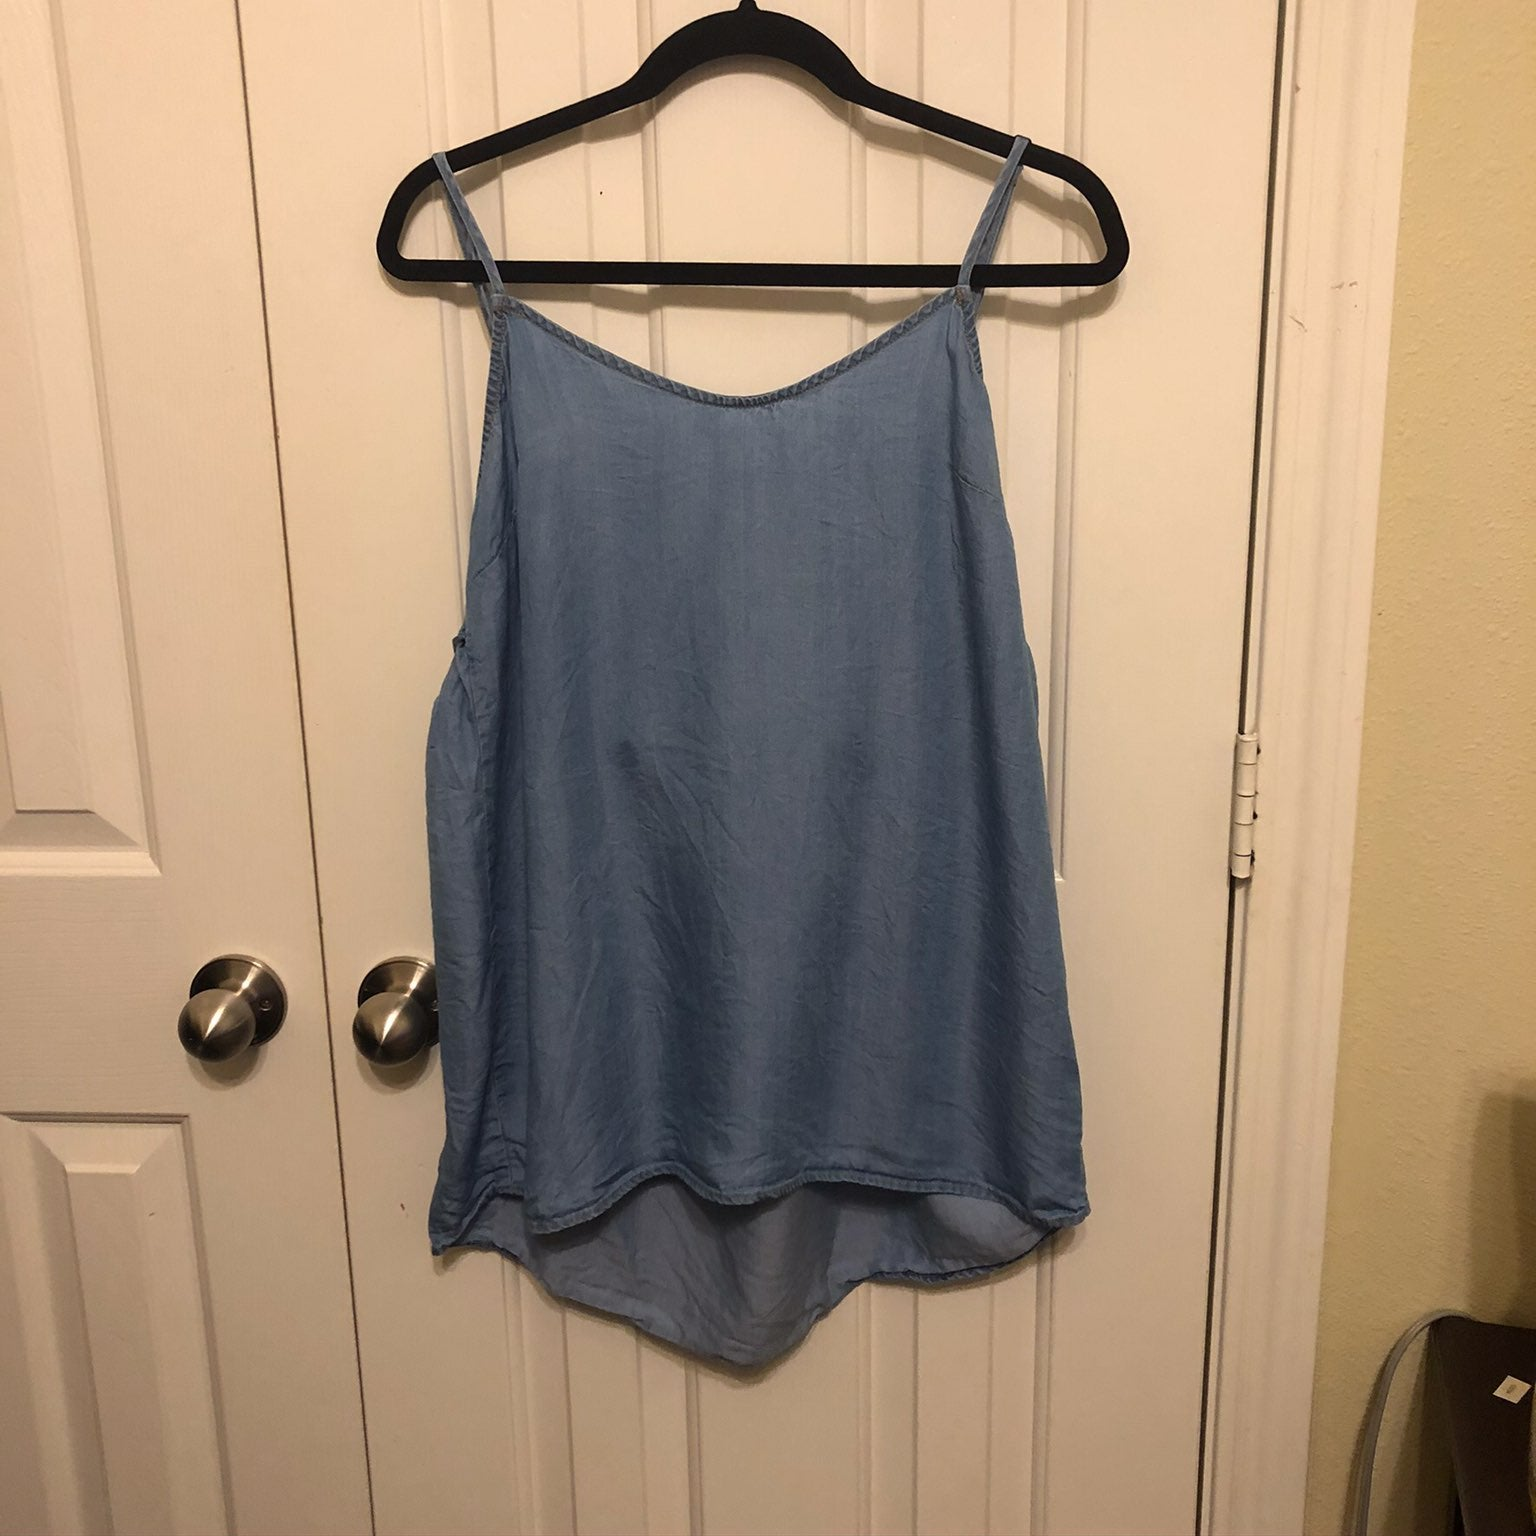 The impeccable pig chambray tank